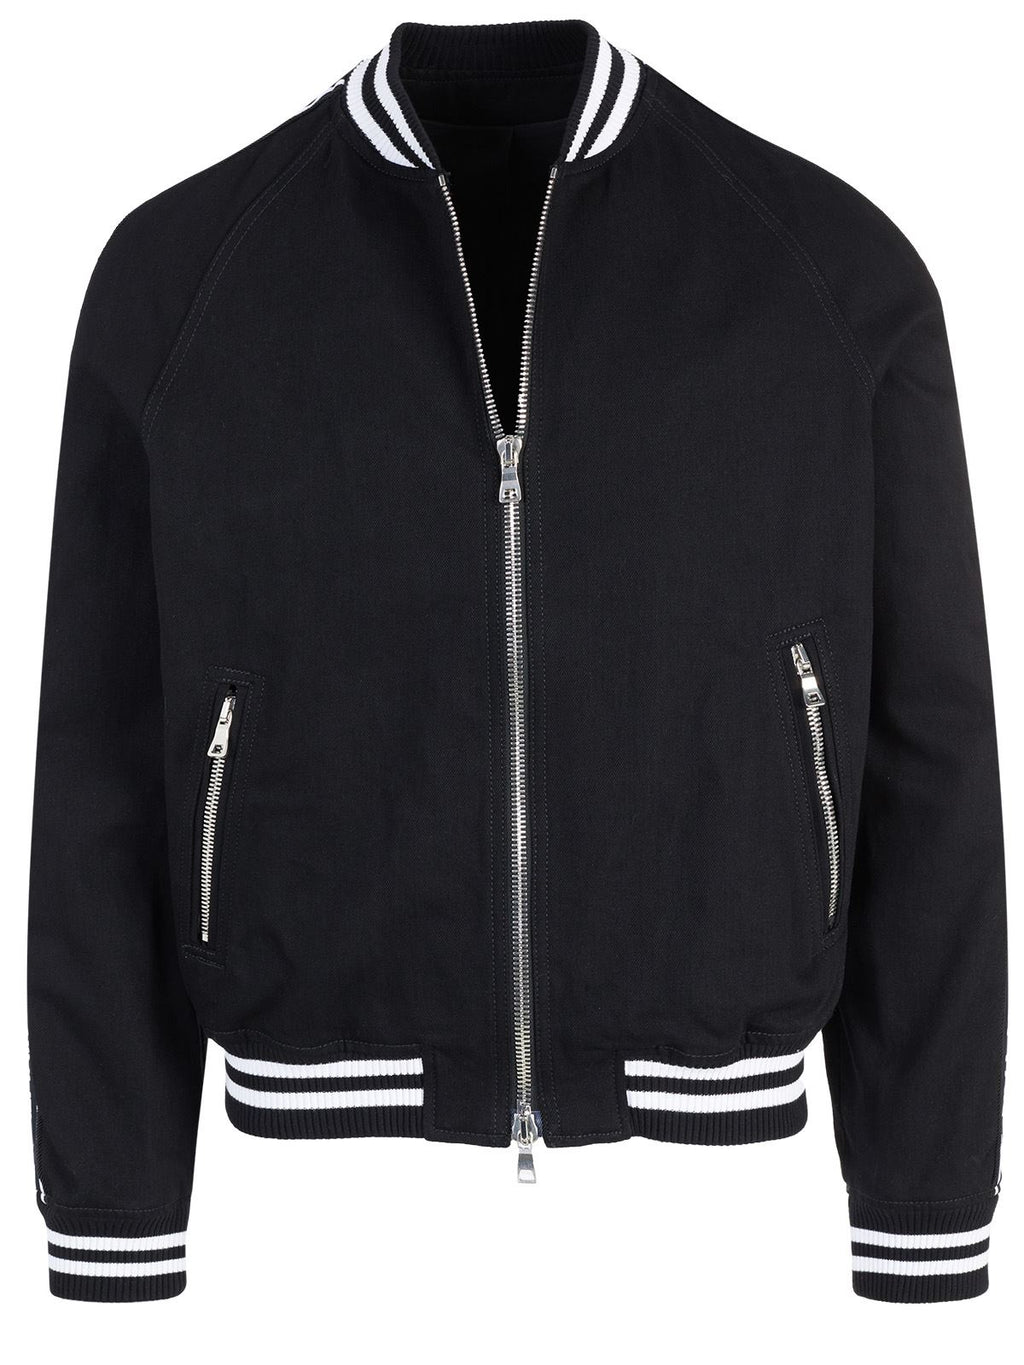 Balmain logo stripe jacket black - Maison De Fashion